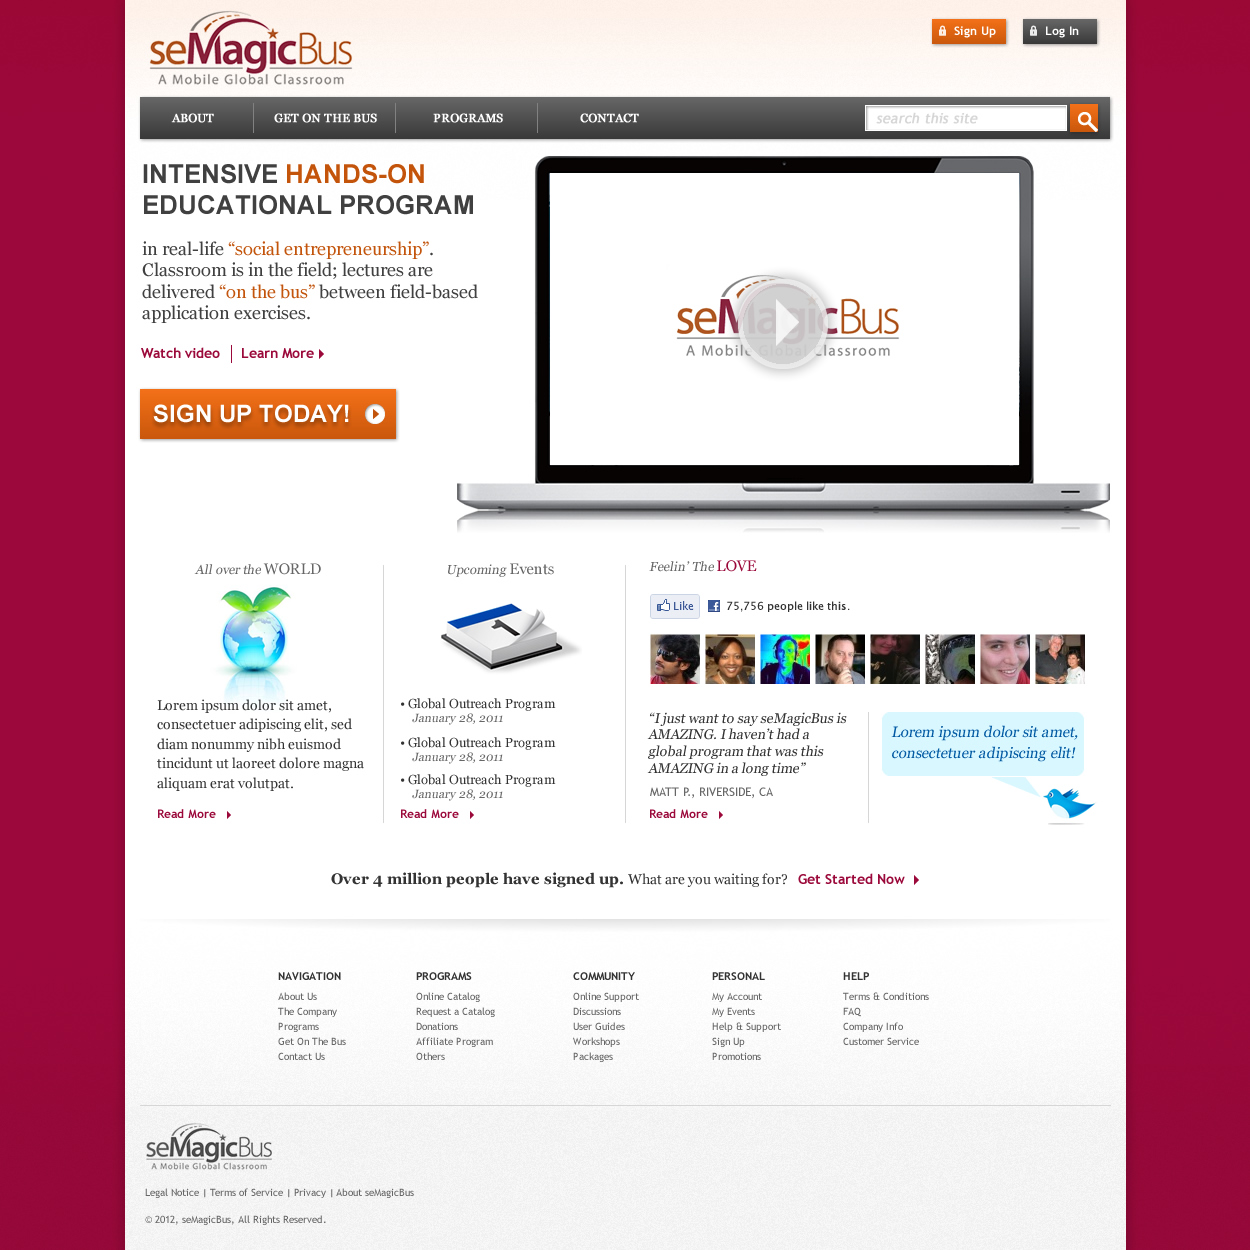 Web Page Design by johngabriel - Entry No. 24 in the Web Page Design Contest seMagicBus Website.